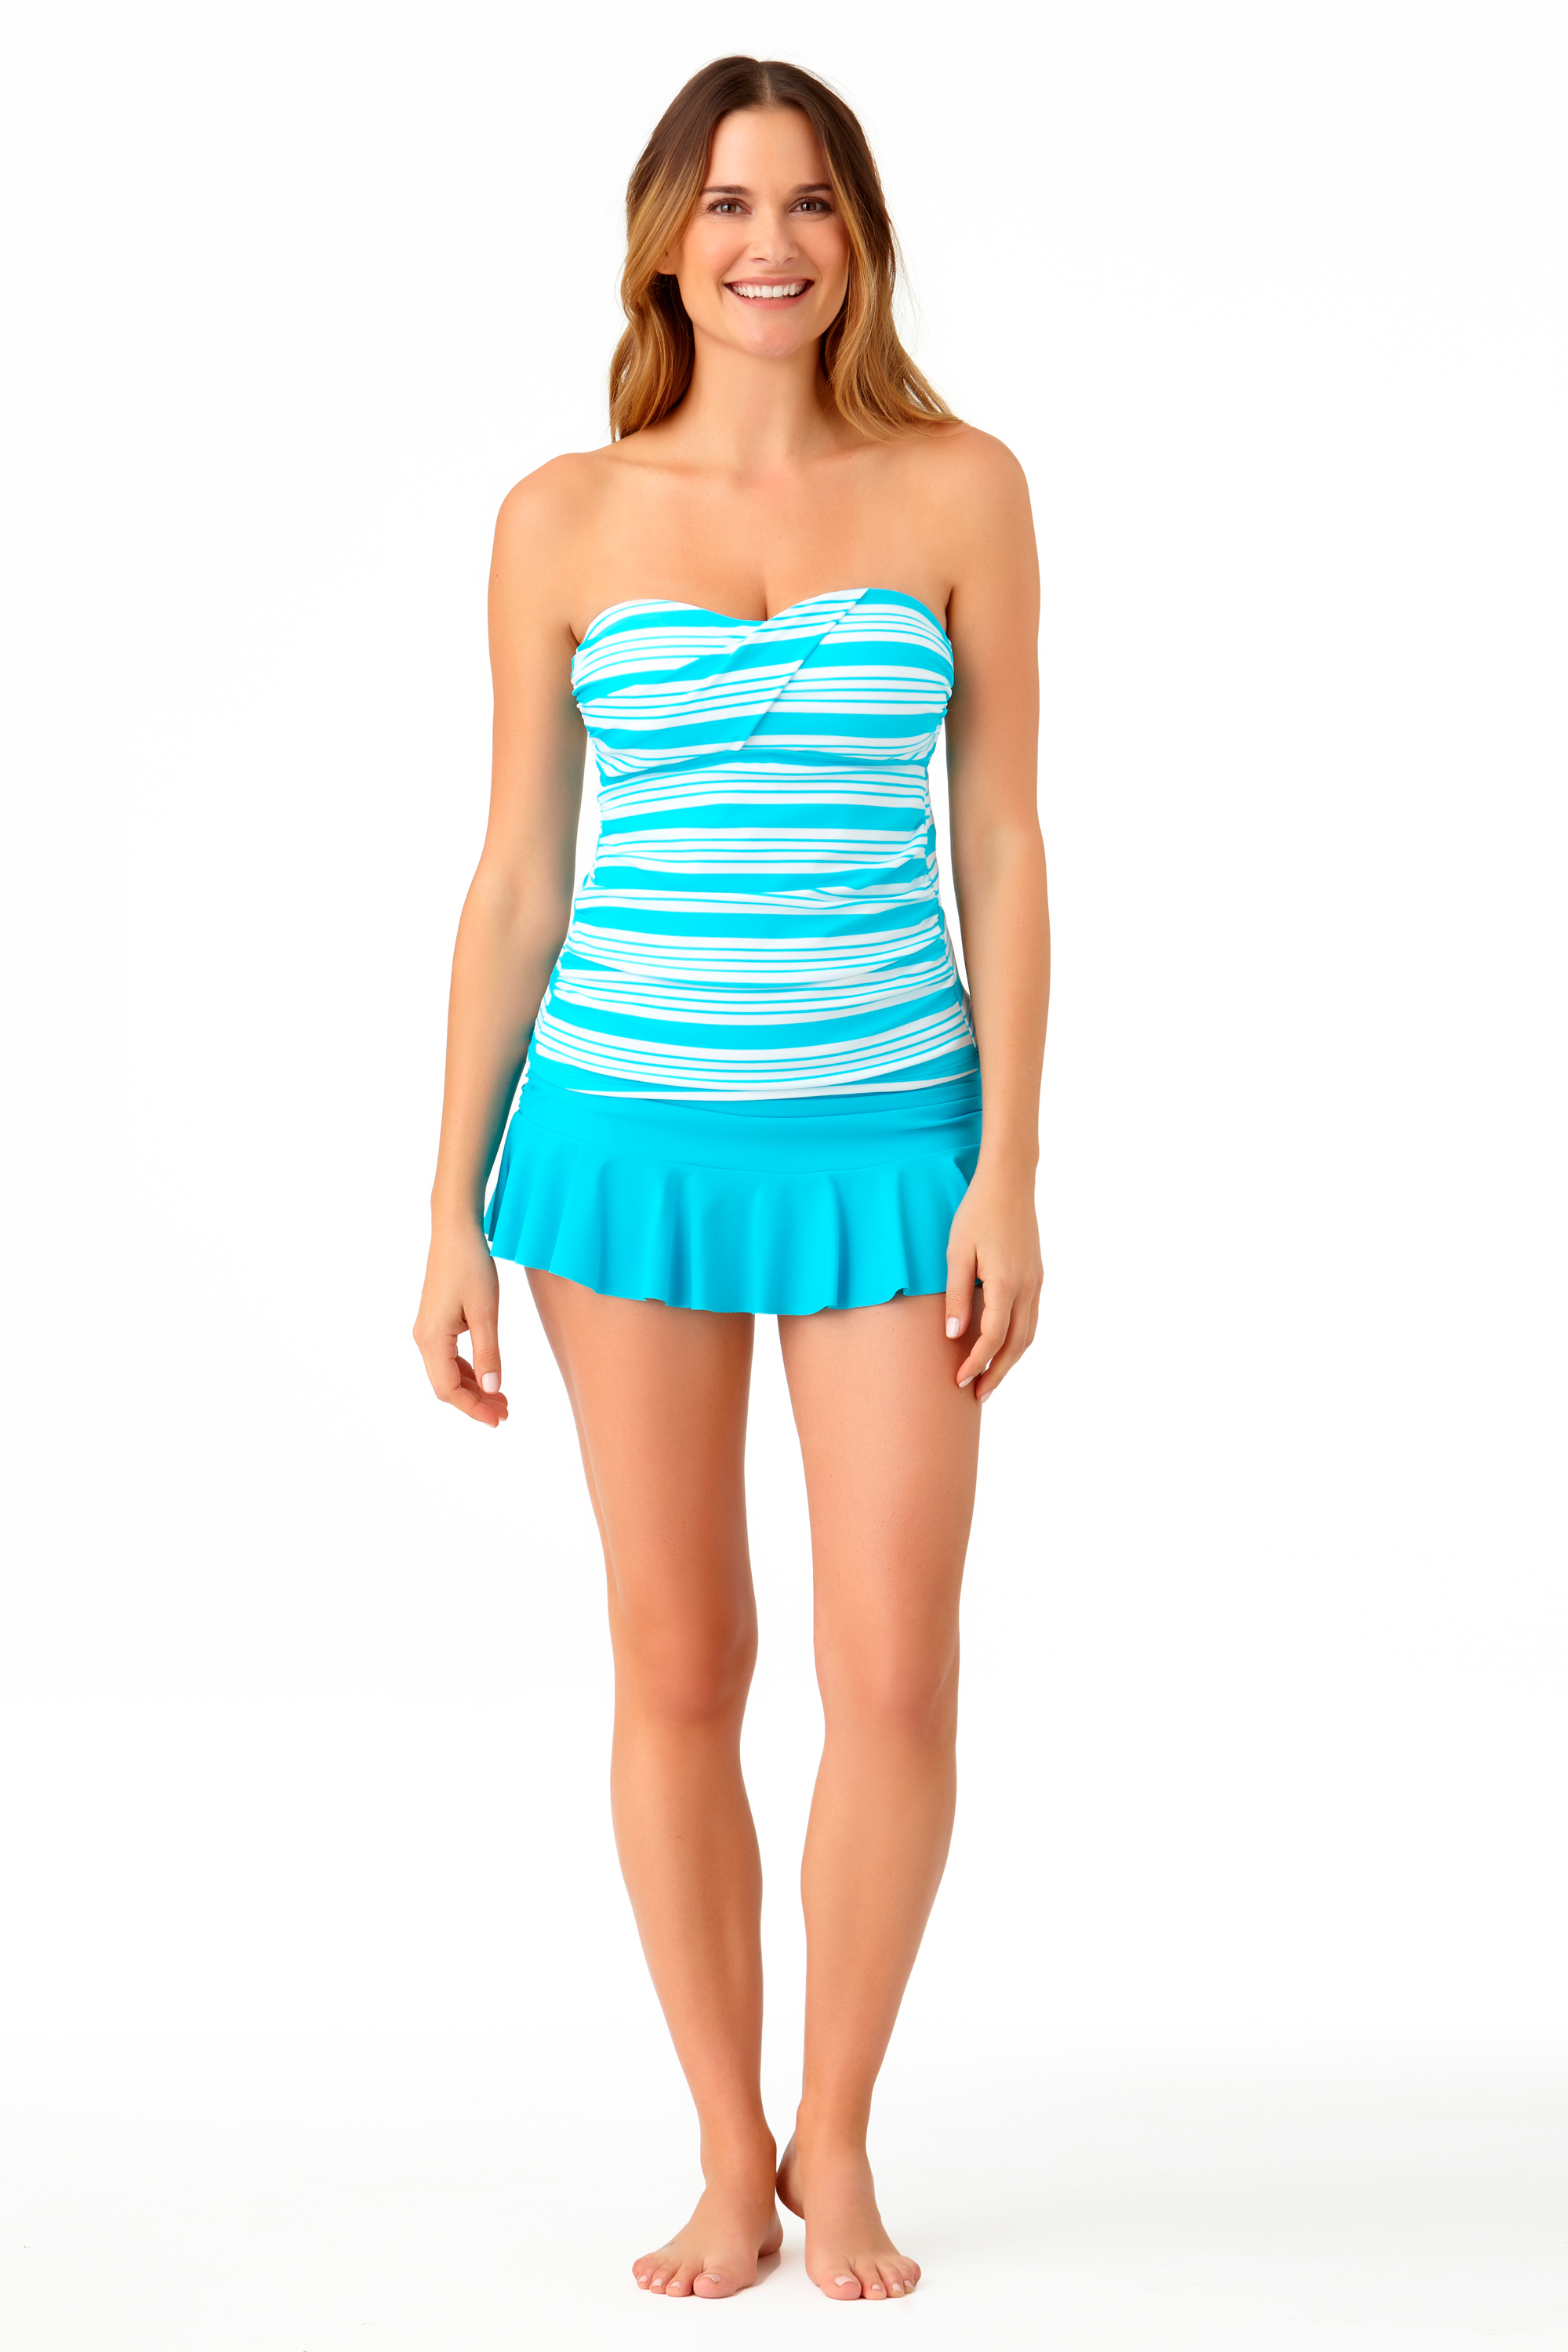 STYLE # CTL27401T / CTL27502B - Melbourne Stripe Twist Bandini TopSOLD OUTSolid Ruffle Skirted BottomSOLD OUT